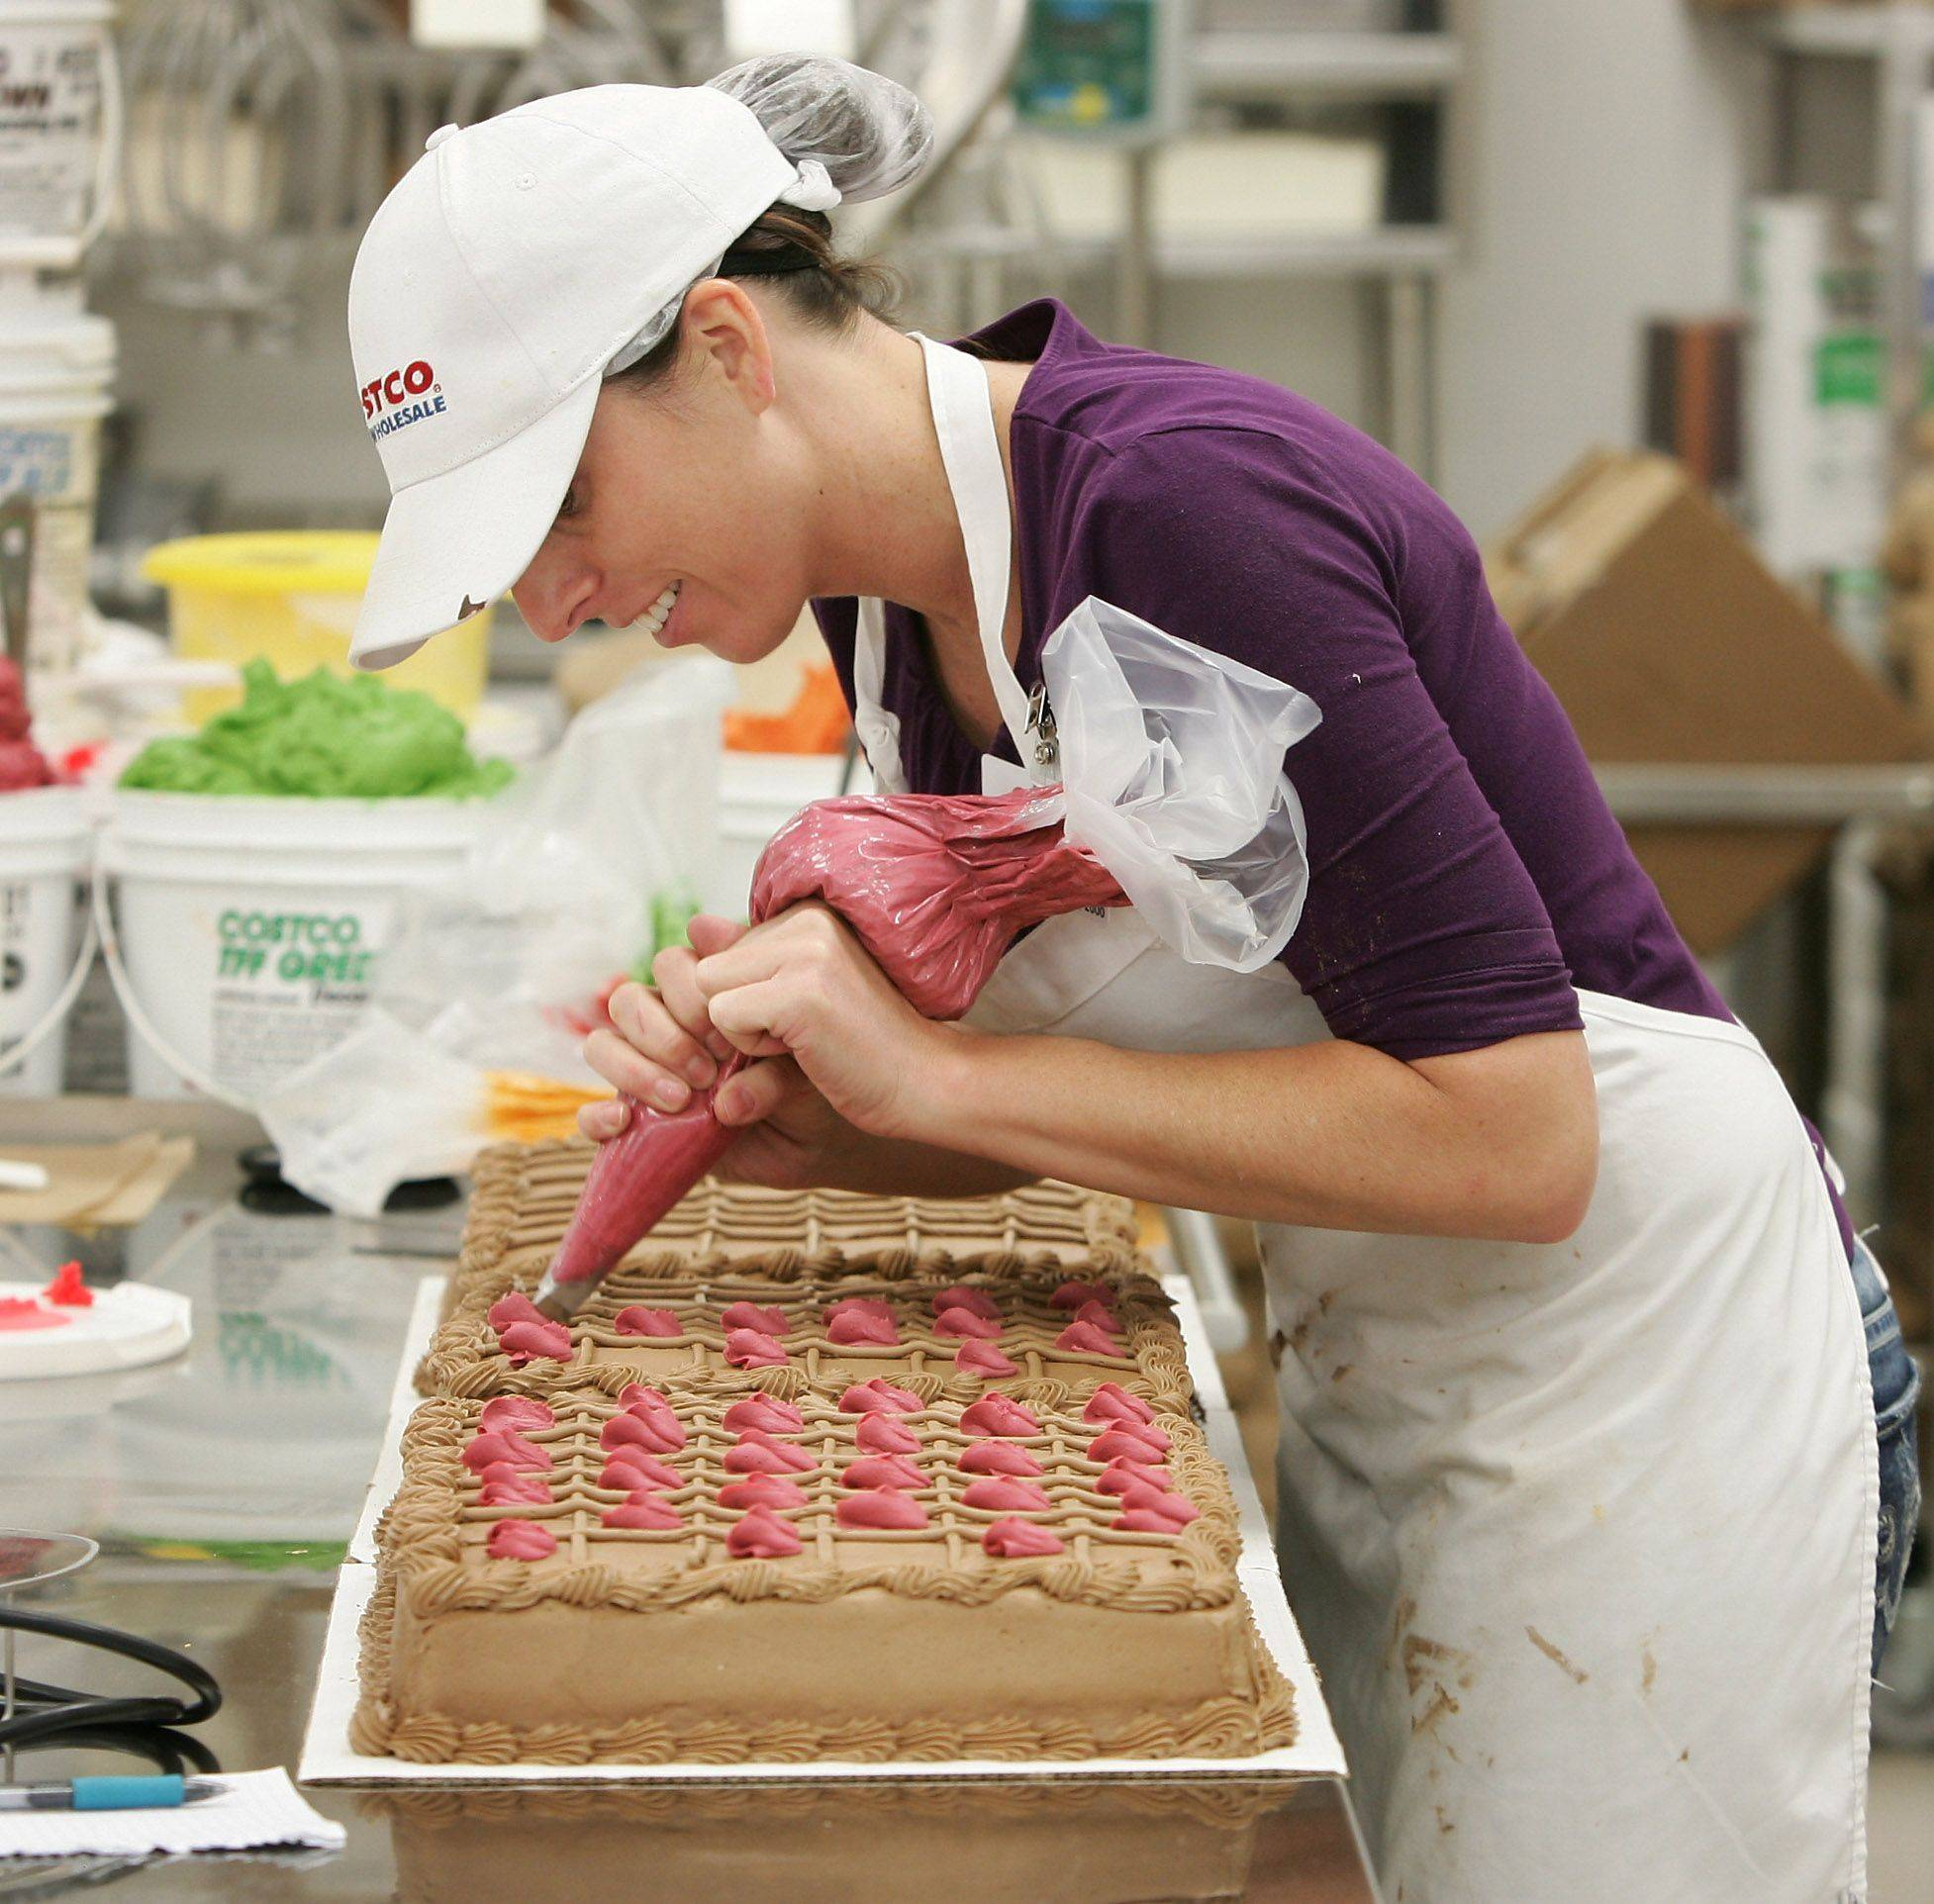 Bakery manager Janet Behrick decorates chocolate cakes in preparation for the Saturday opening of Costco in Mettawa.